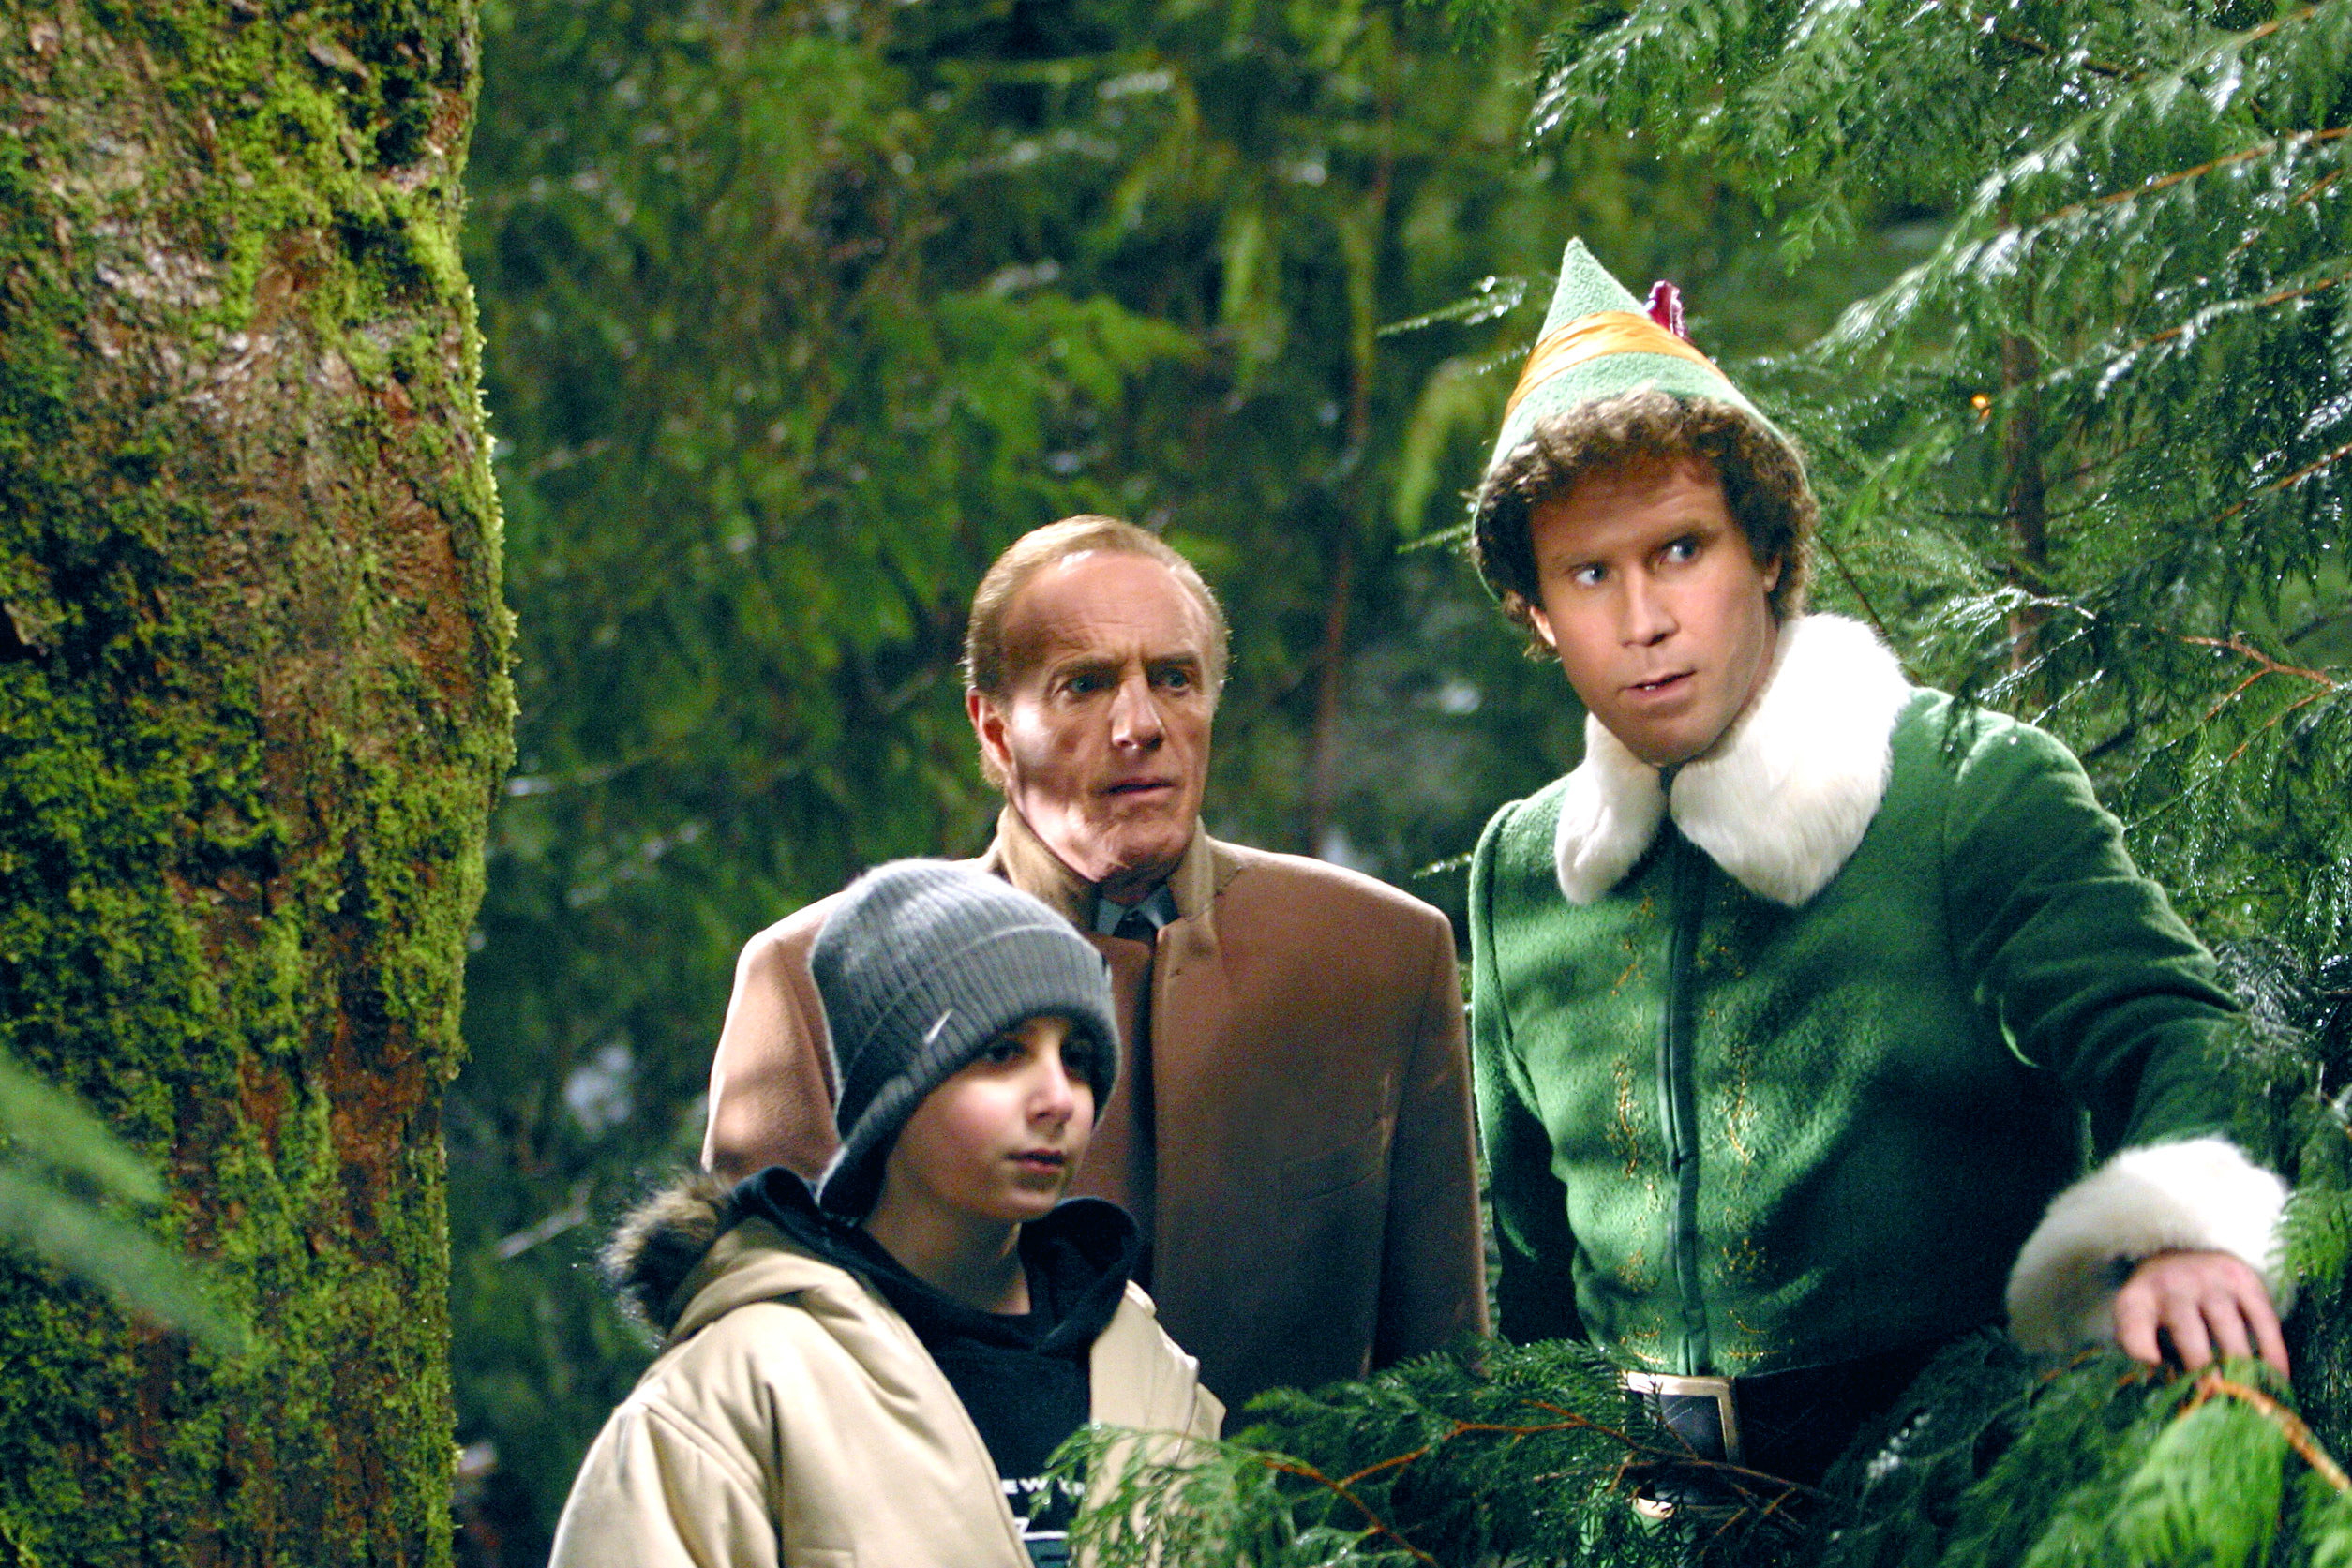 Michael, Walter, and Buddy the Elf in the woods